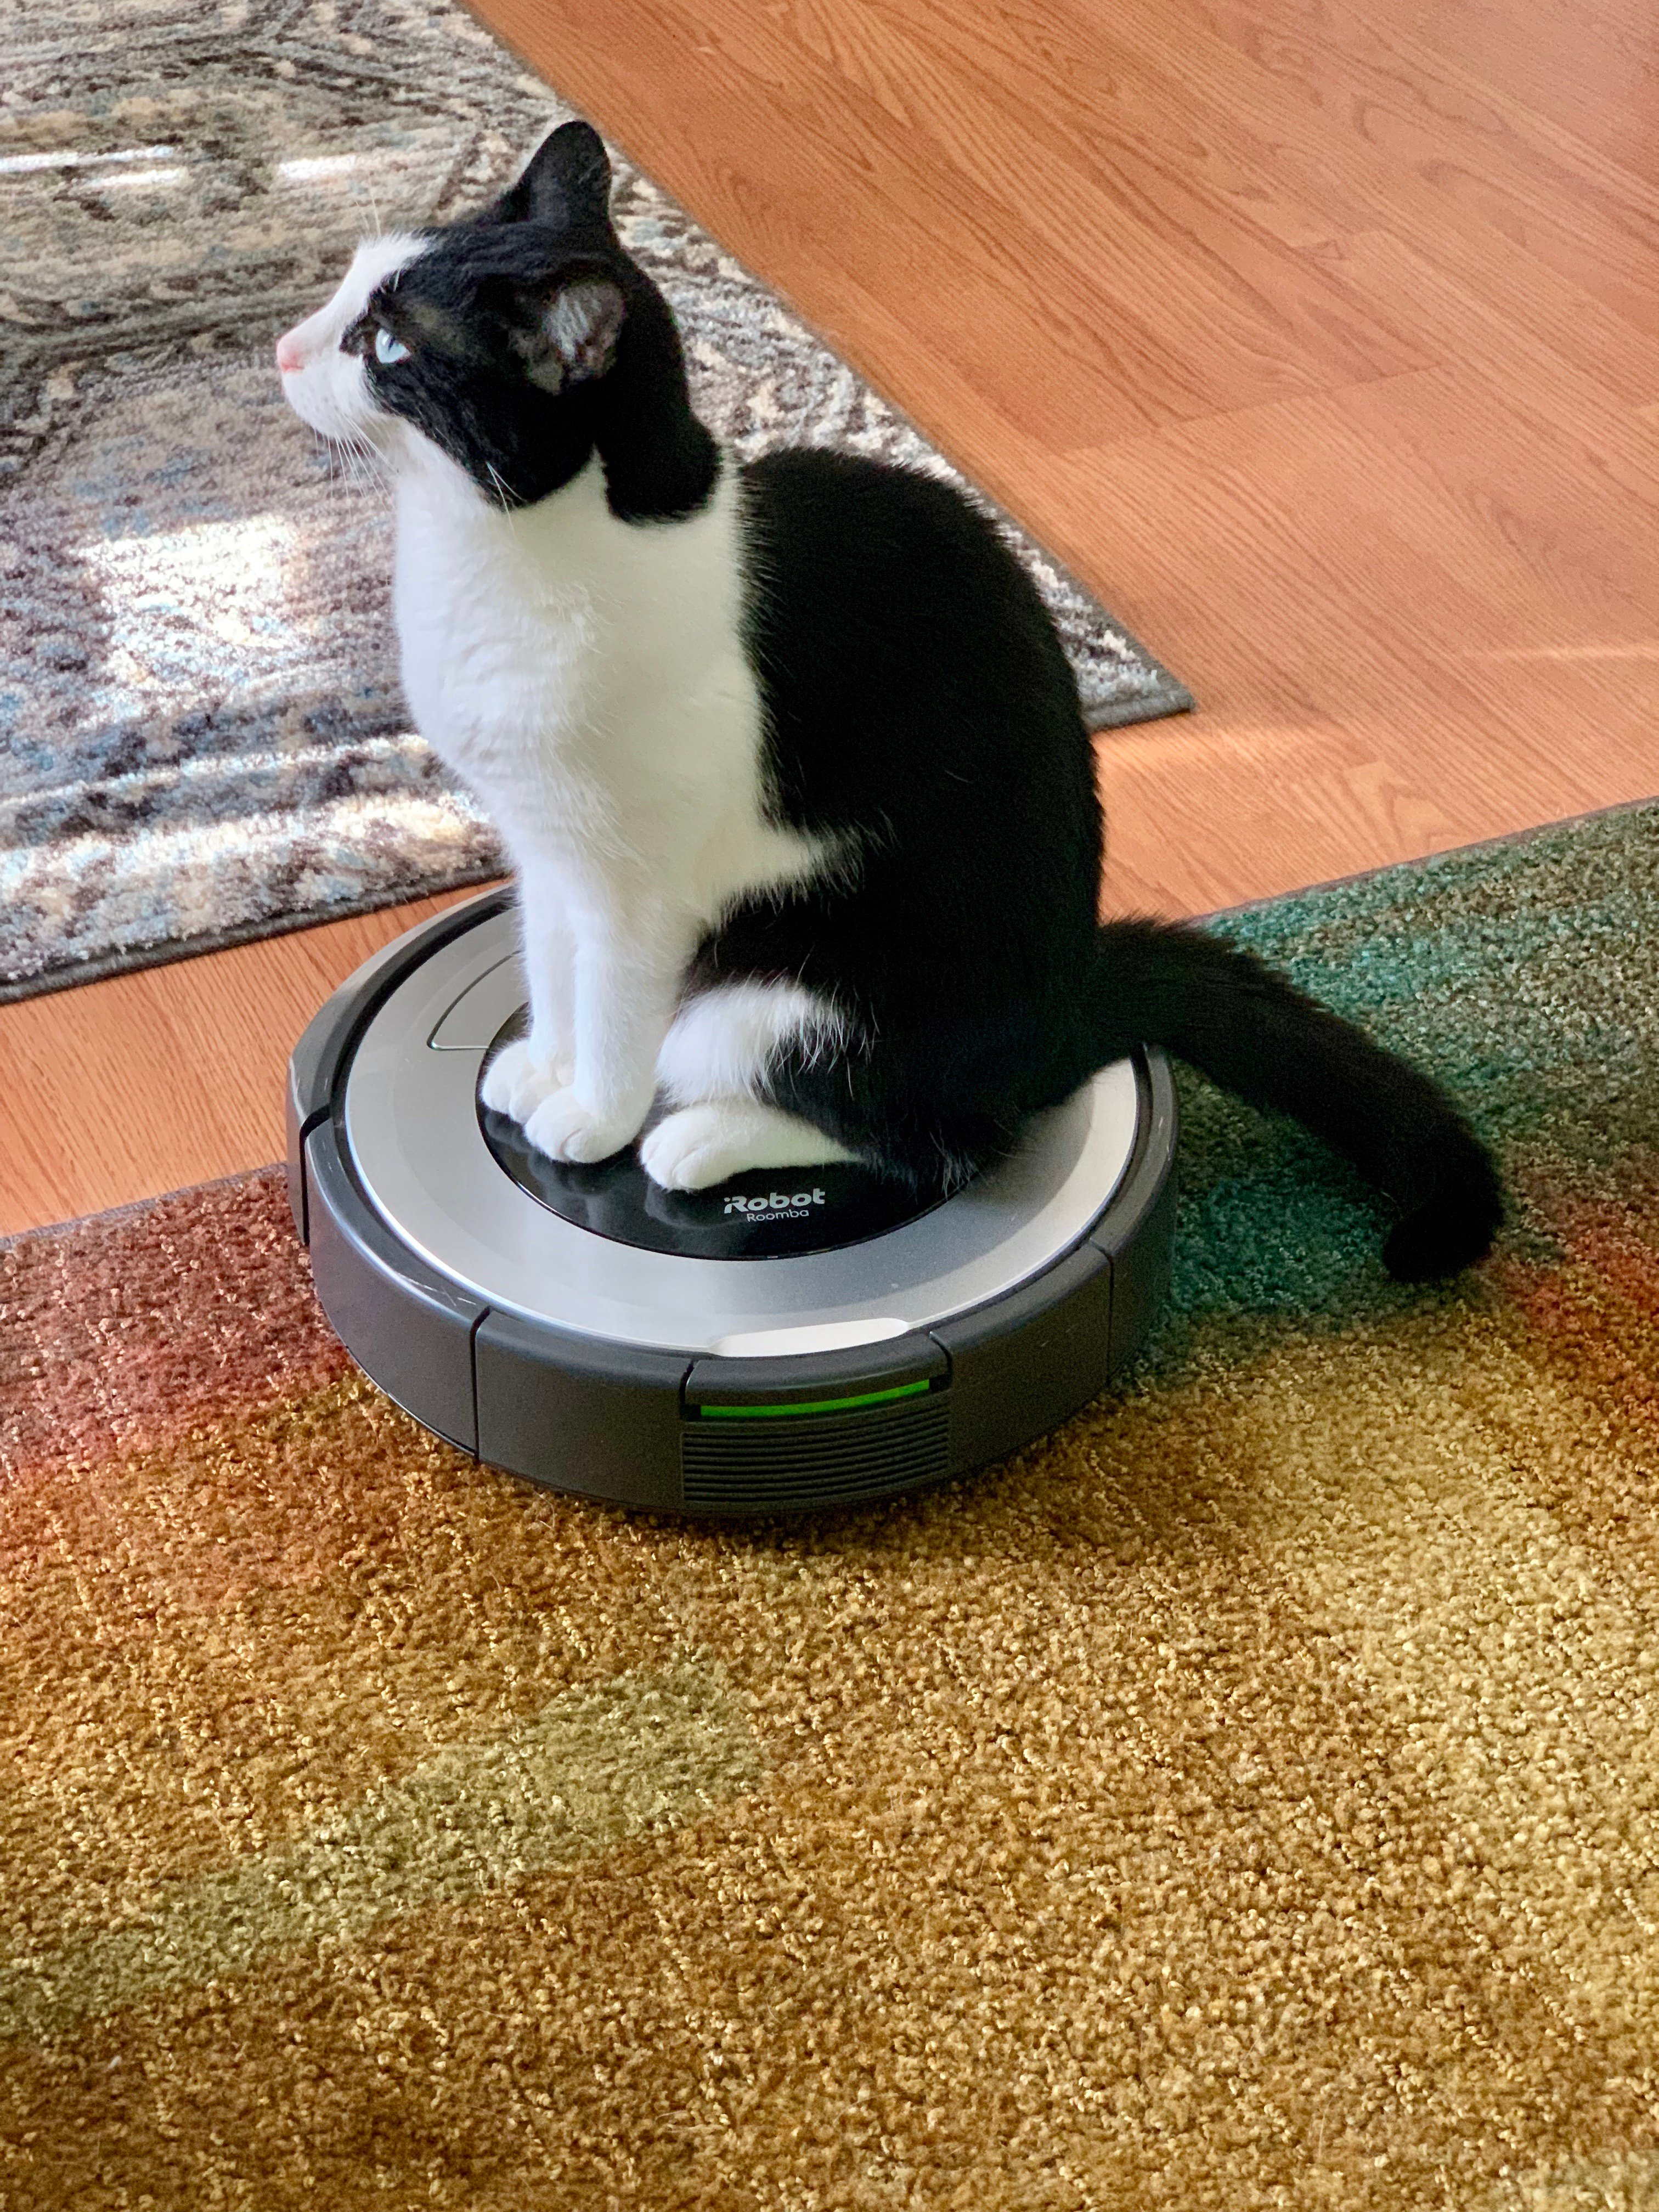 Super Is Roomba The Best Robot Vacuum Findreviews Download Free Architecture Designs Scobabritishbridgeorg